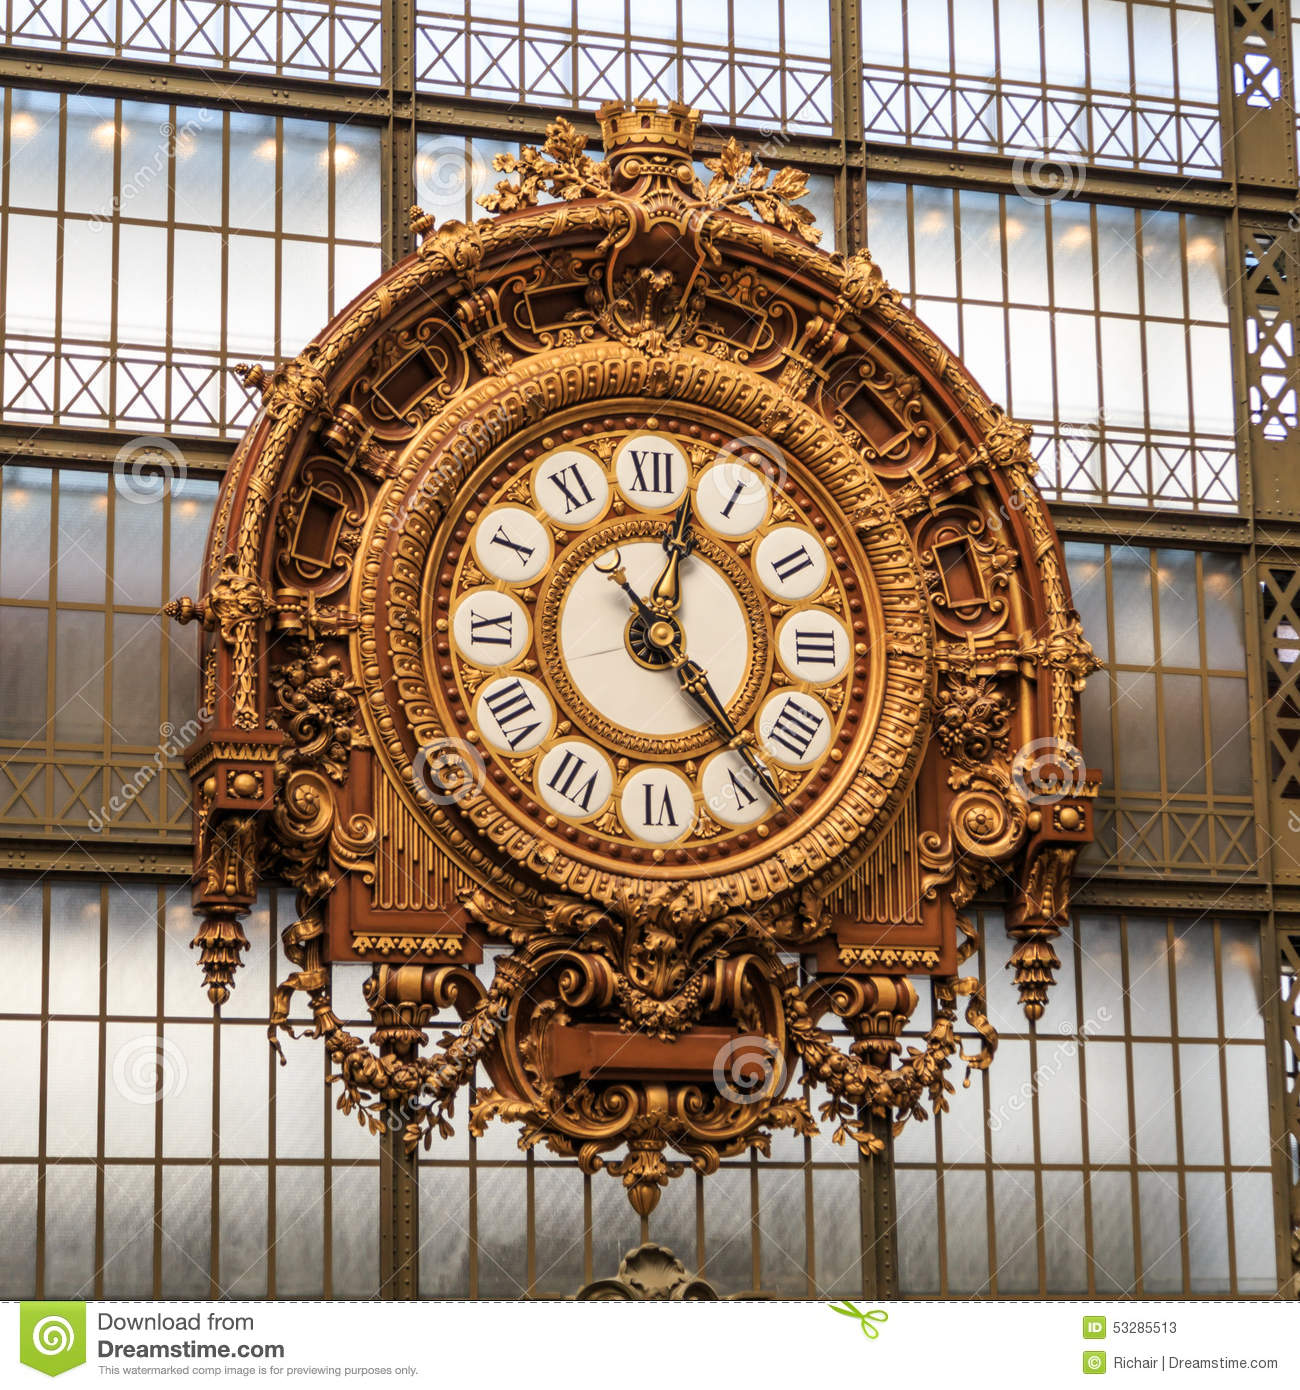 musee d 39 orsay clock stock image image of hour europe. Black Bedroom Furniture Sets. Home Design Ideas